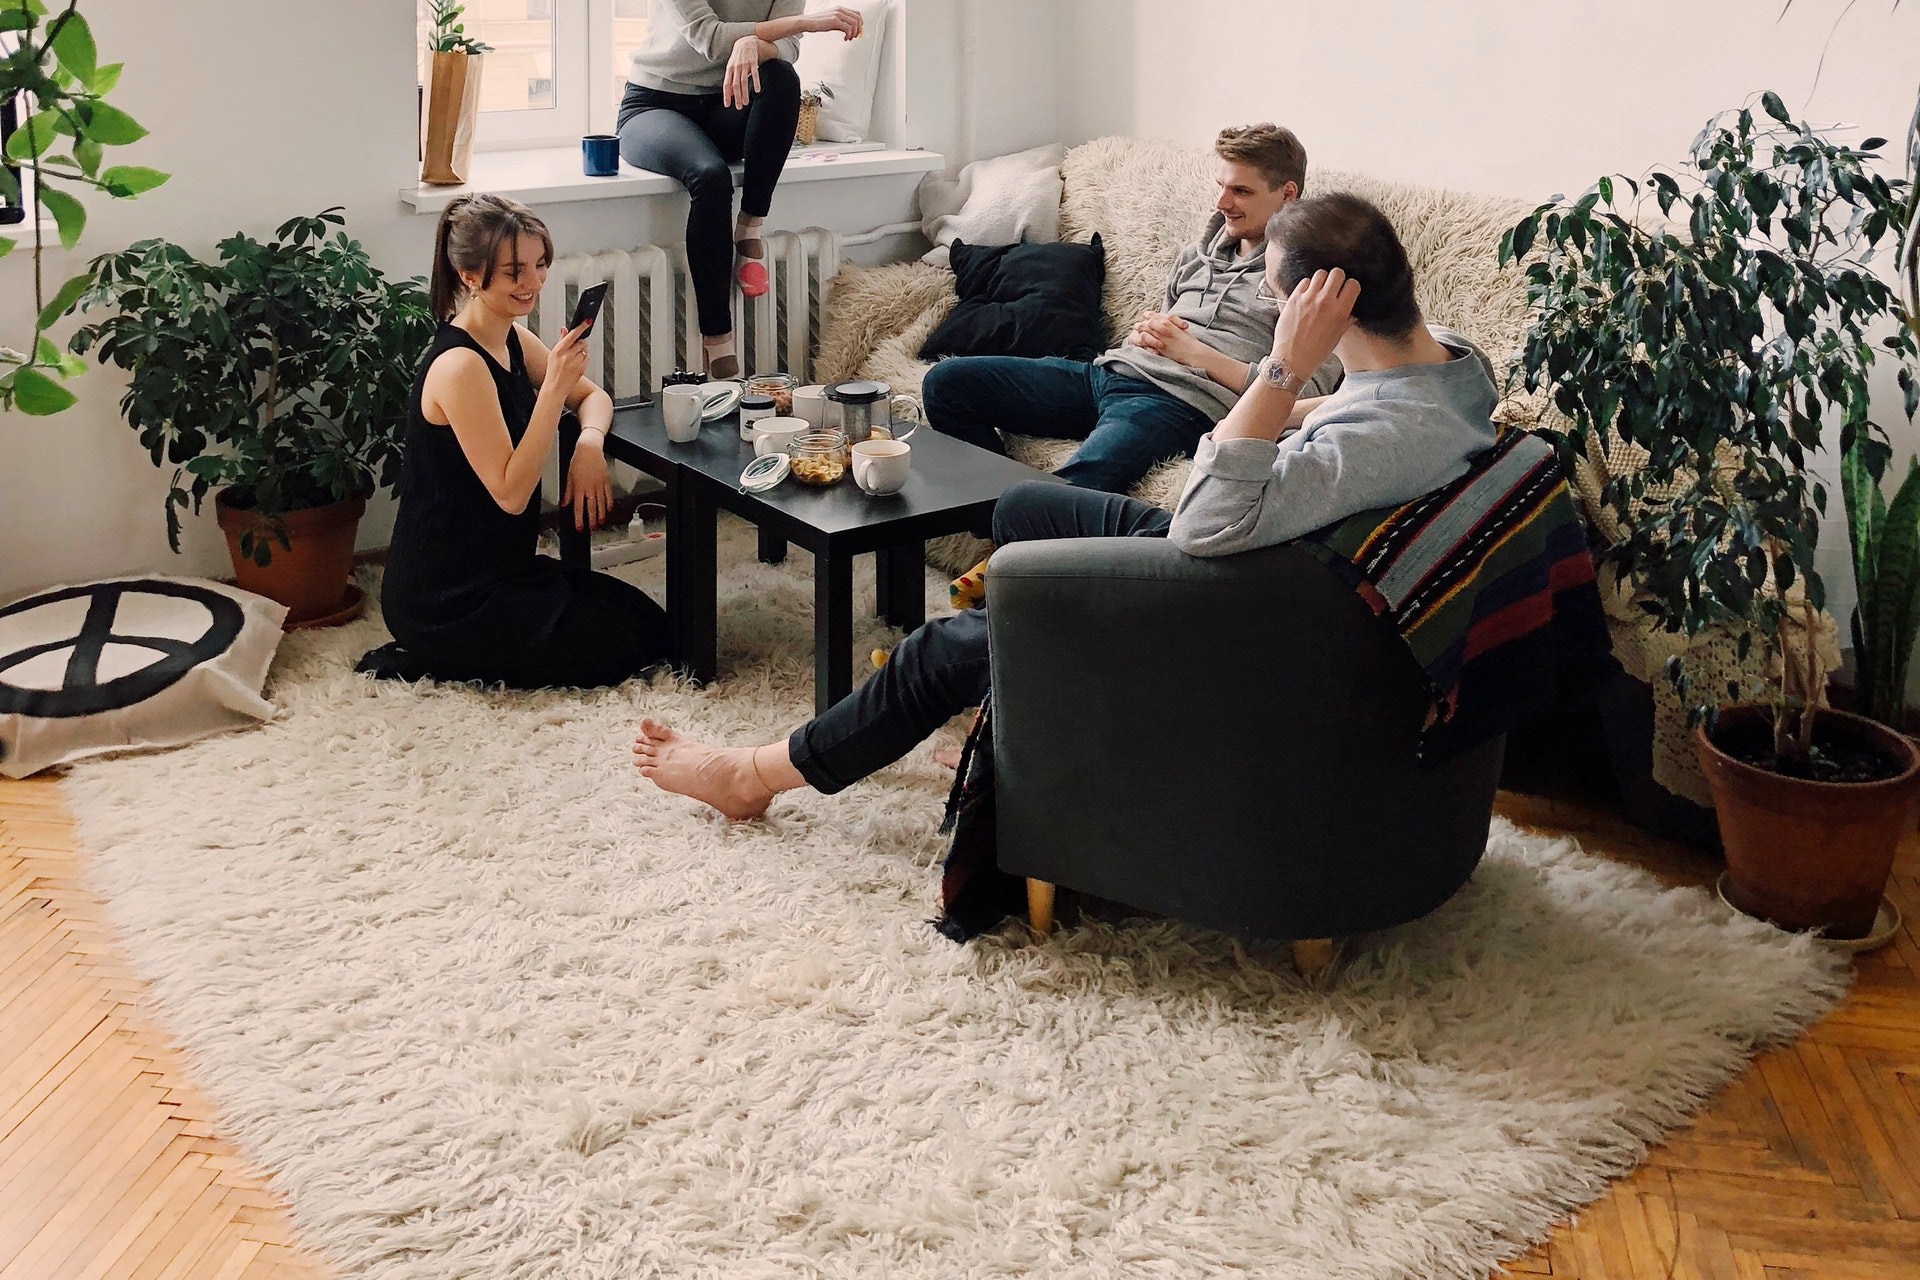 people-gathered-inside-house-sitting-on-sofa-1054974